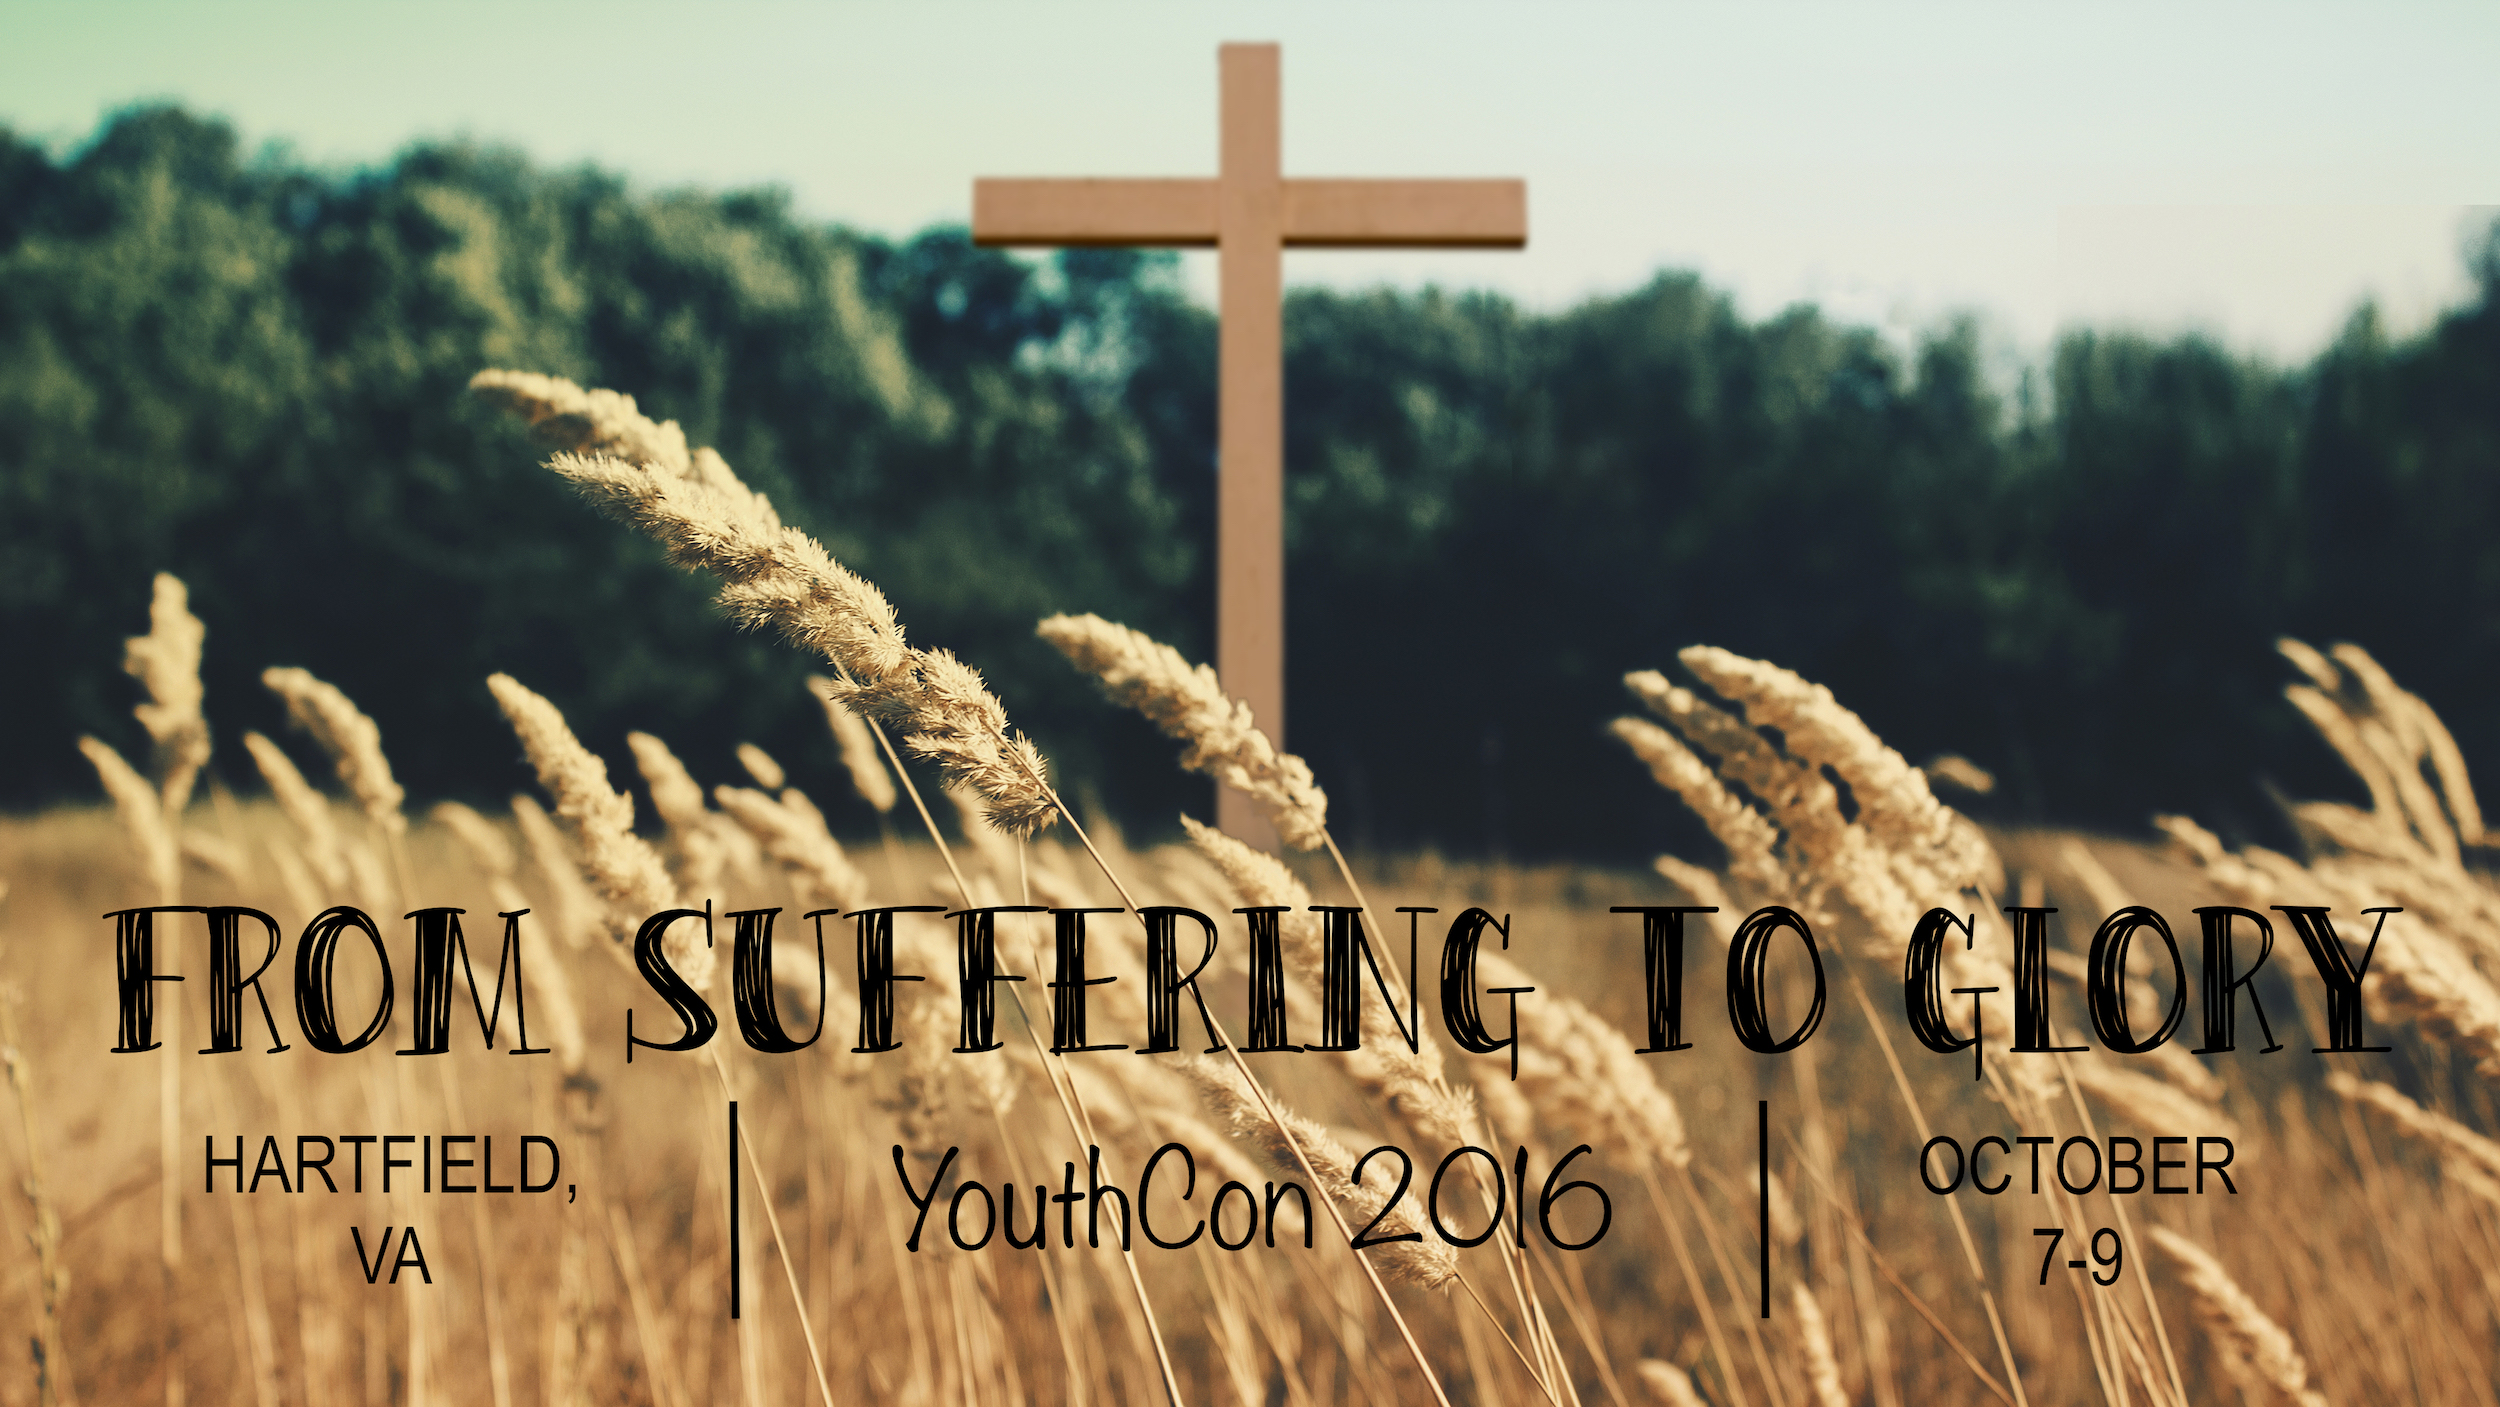 YouthCon 2016